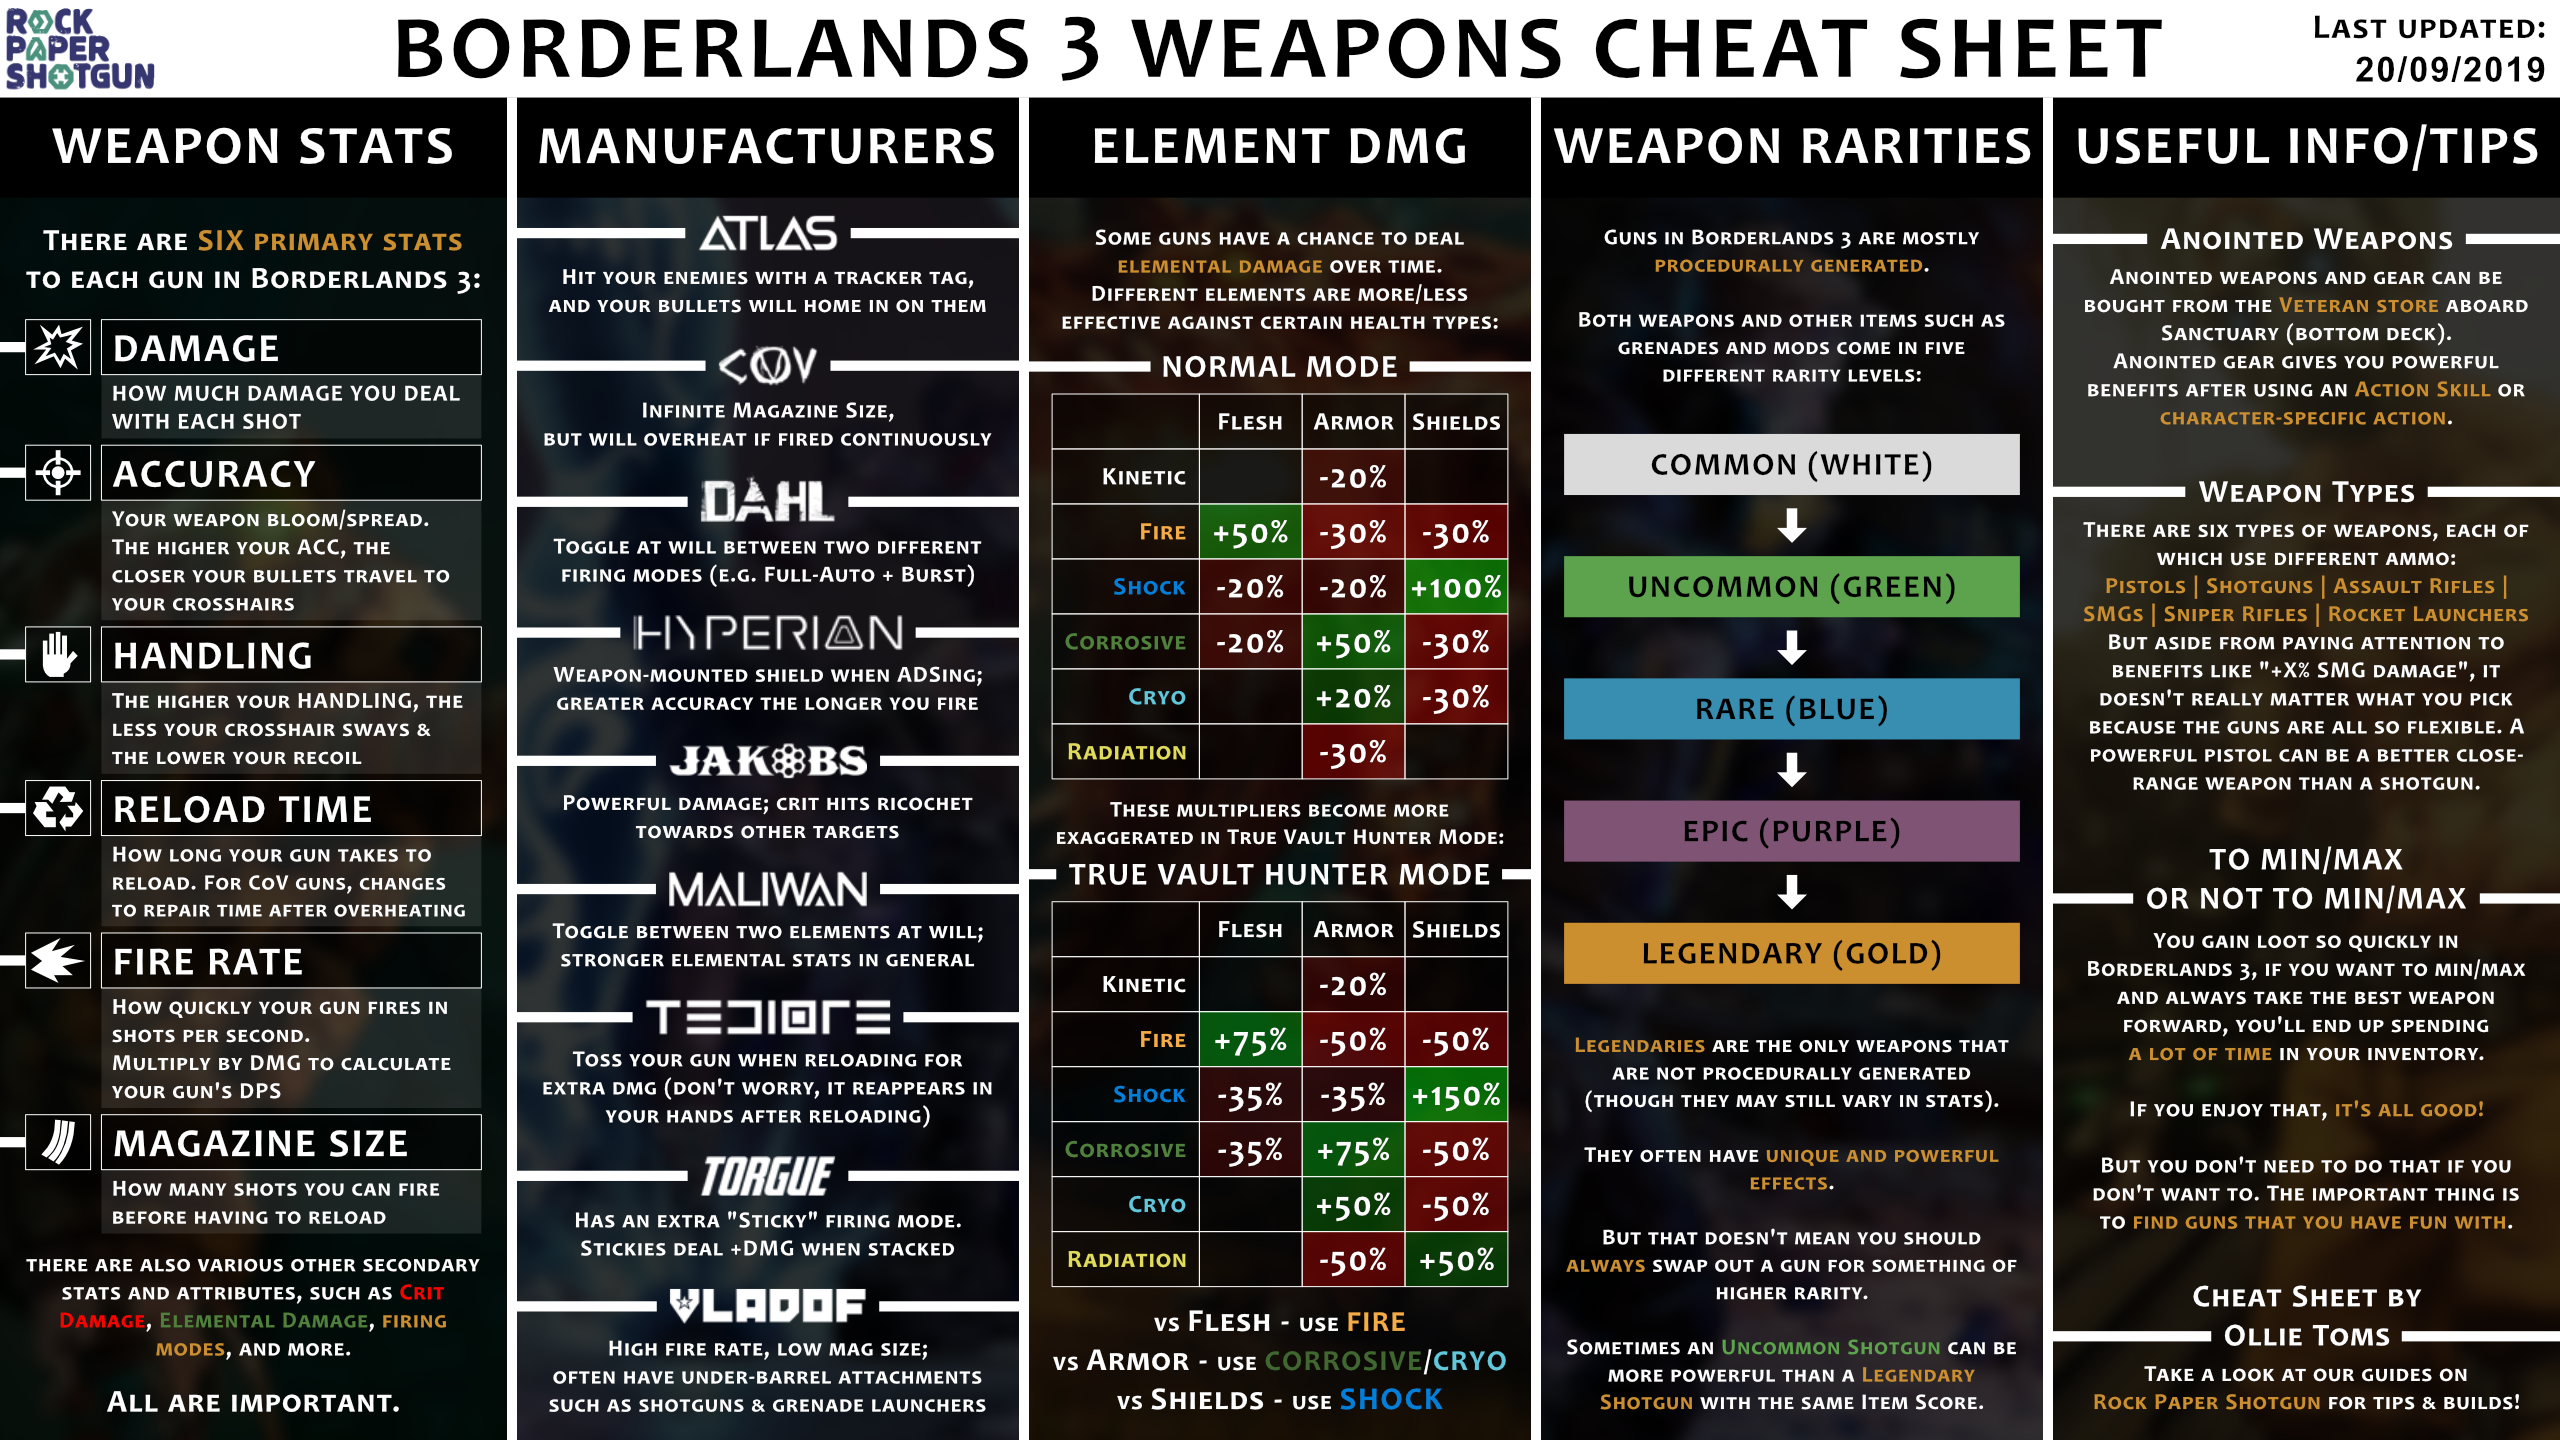 Borderlands 3 weapons cheat sheet v3